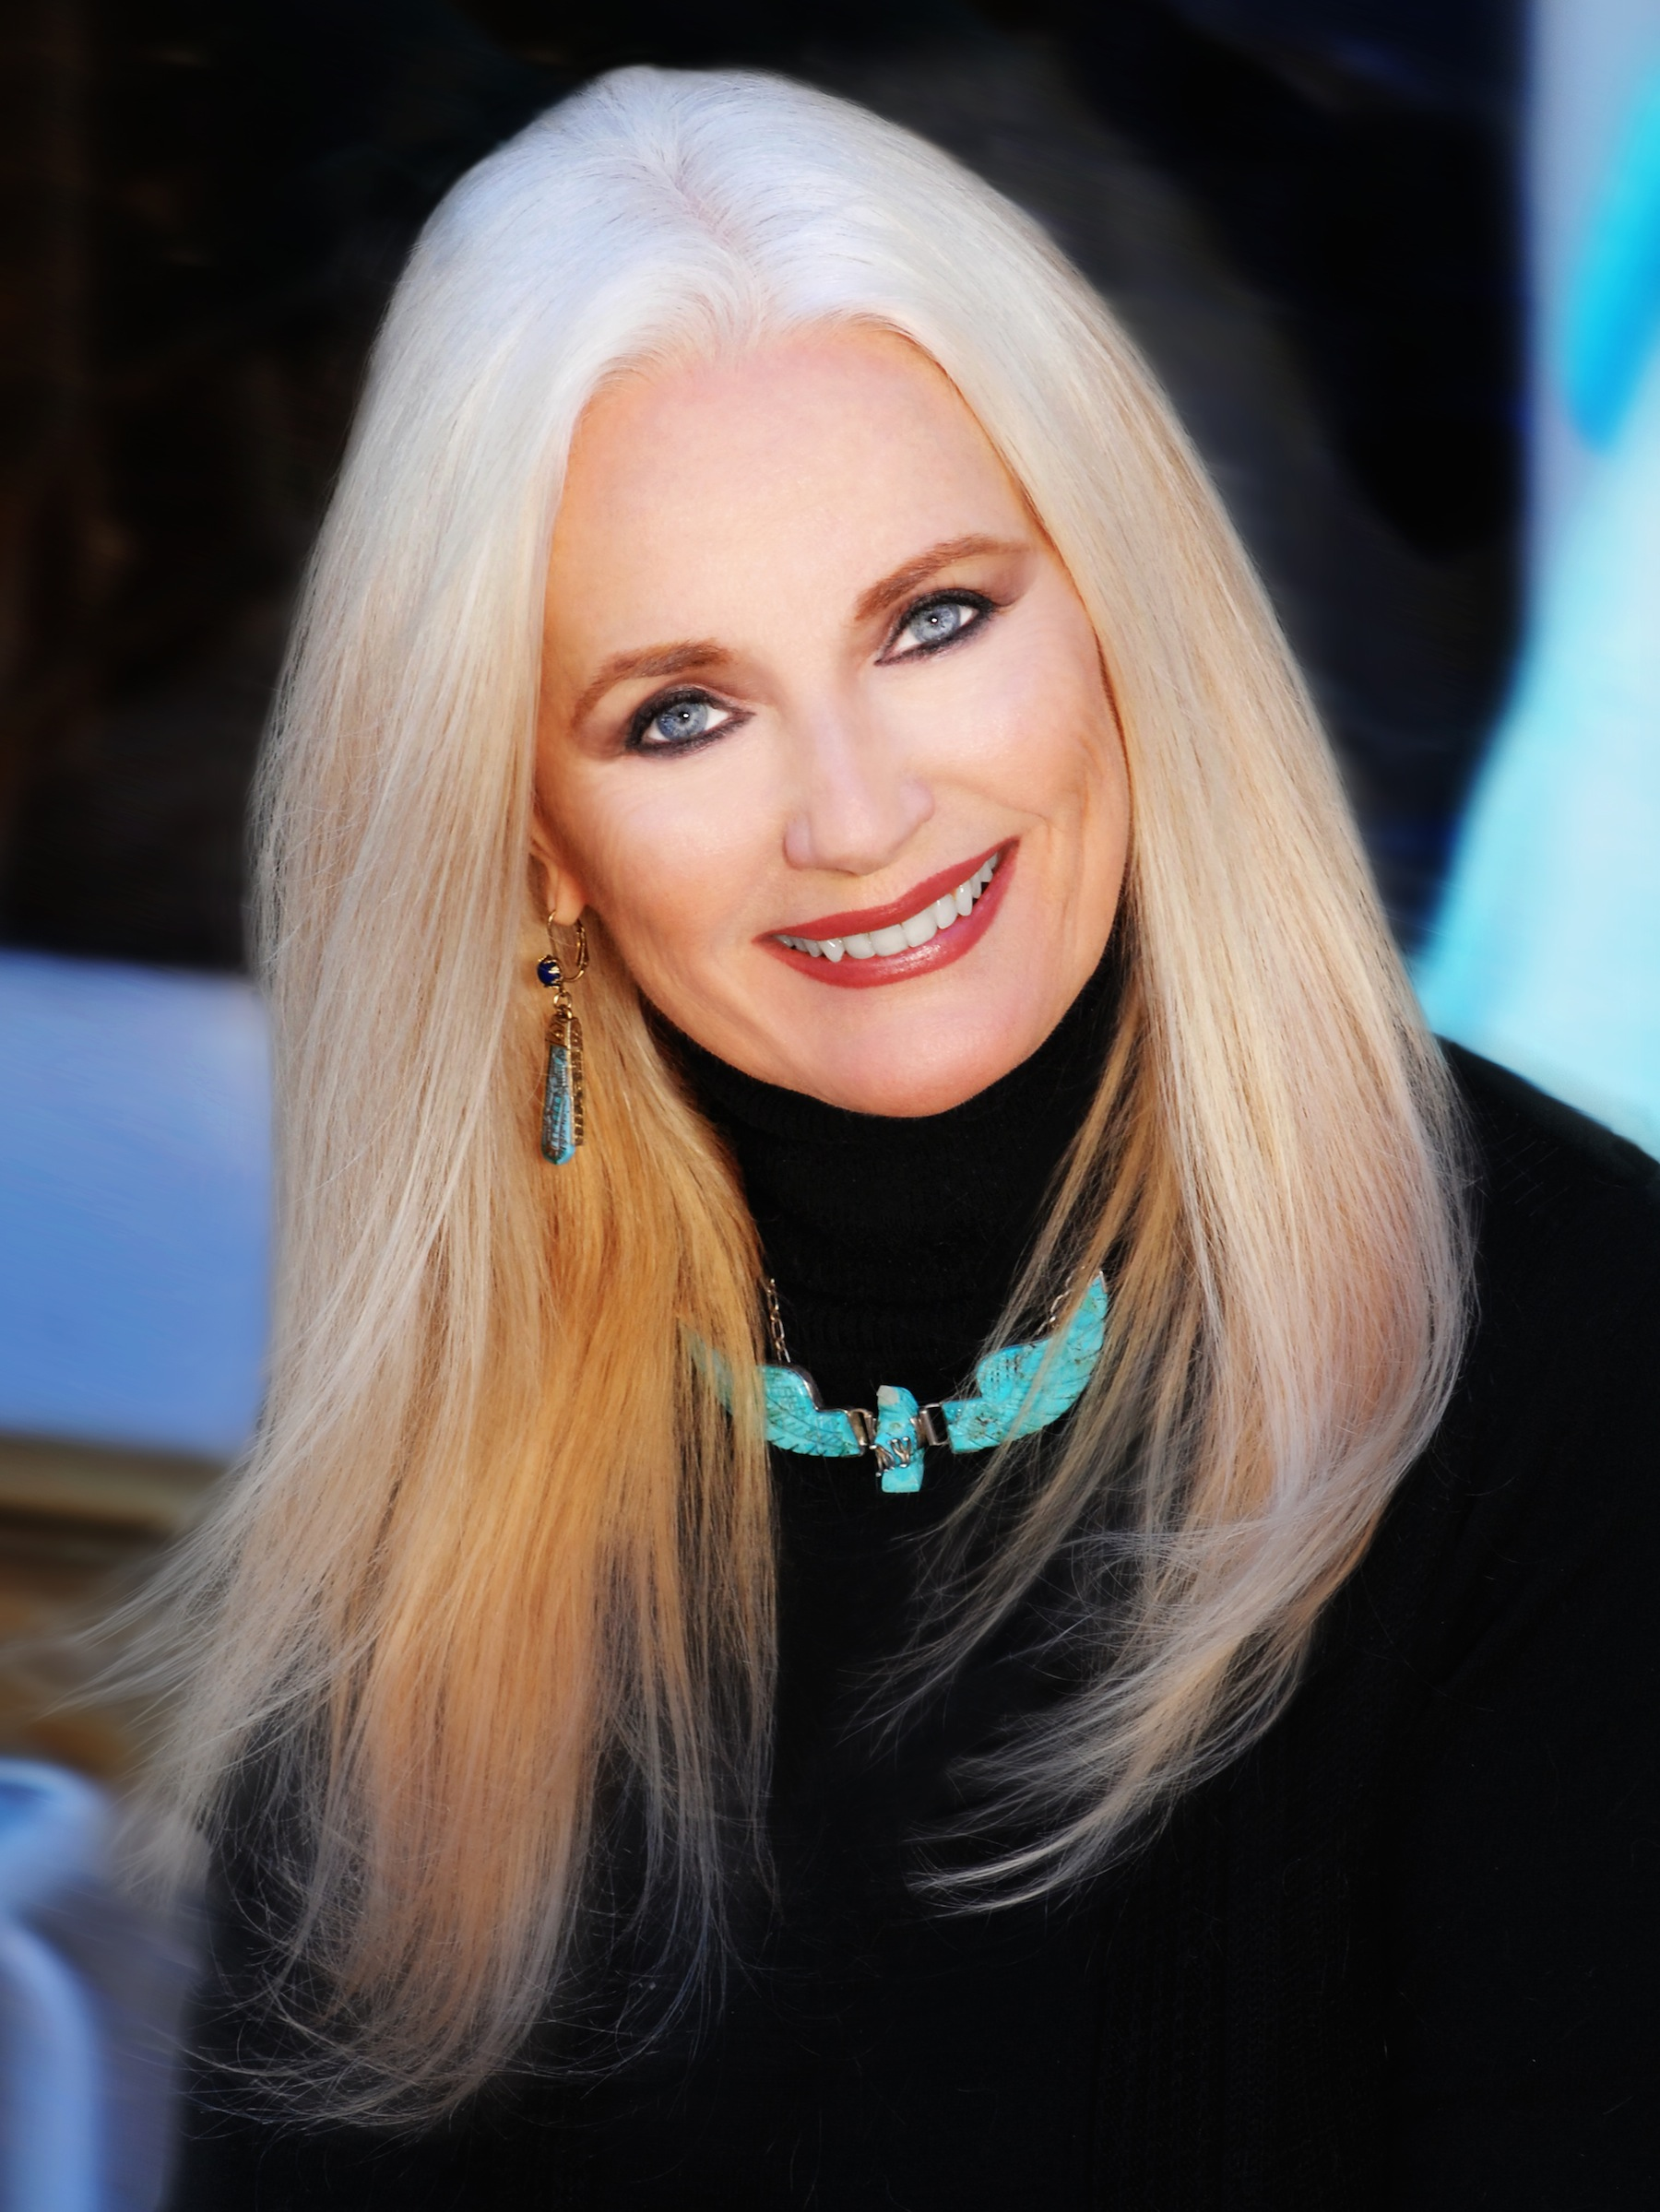 Celeste Yarnall on Life Changes With Filippo     Radio Show  241     Celeste Yarnall on Life Changes With Filippo   Radio Show  241